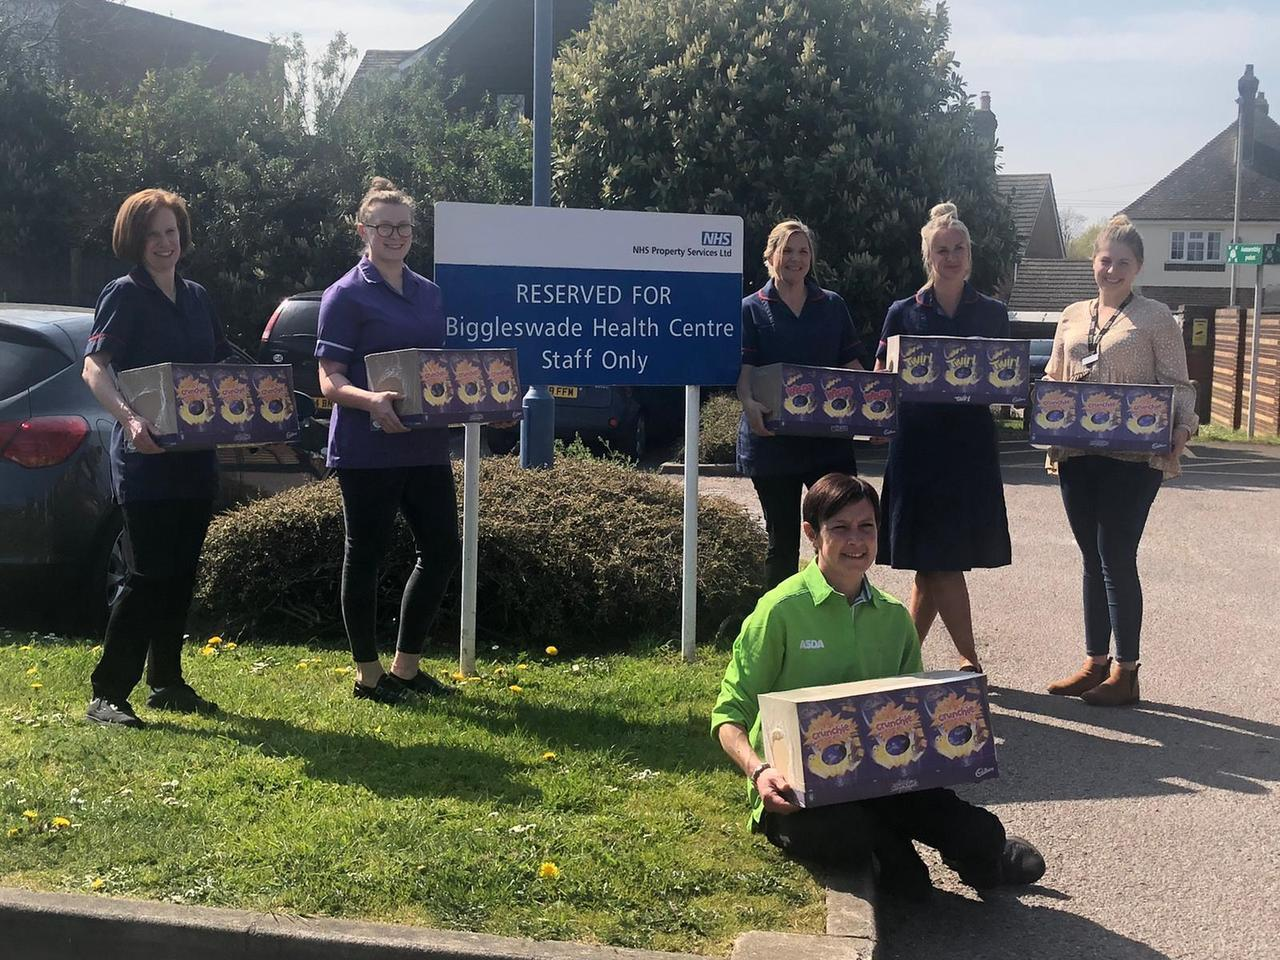 NHS Easter egg donation  | Asda Biggleswade